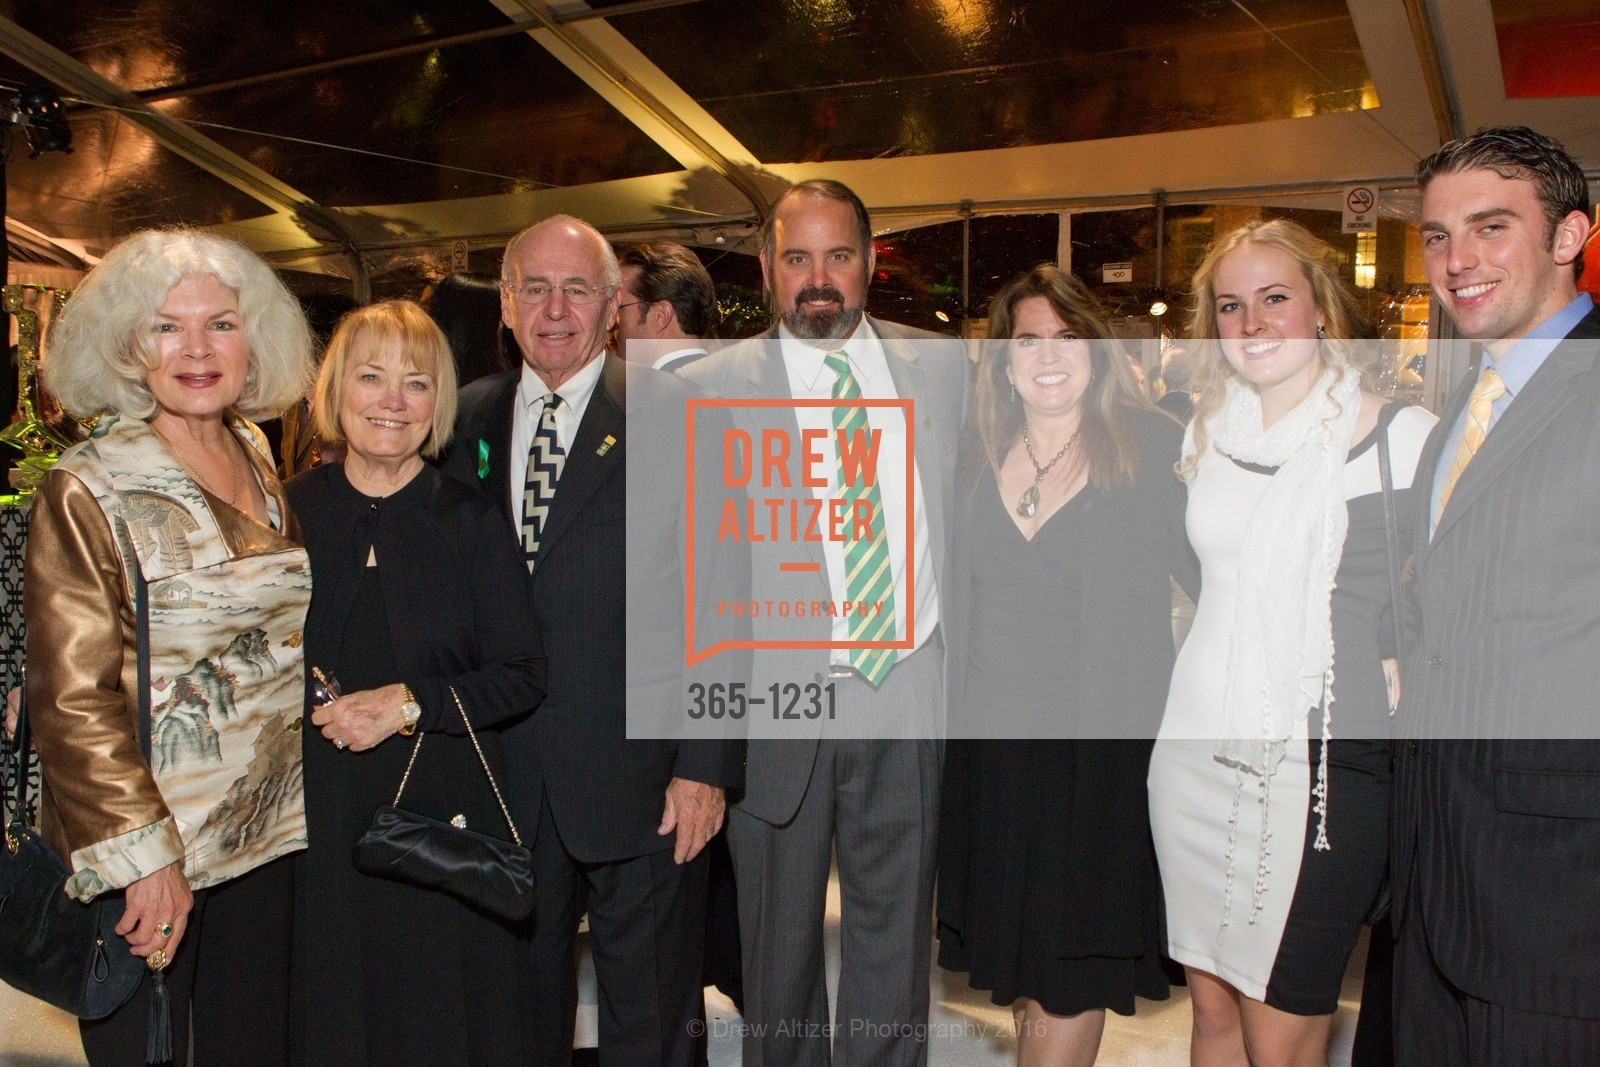 Barbara Bechelli, Sharon Malloy, Tom Malloy, Kevin Malloy, Nancy Malloy, Brenna Malloy, William Dessert, Photo #365-1231